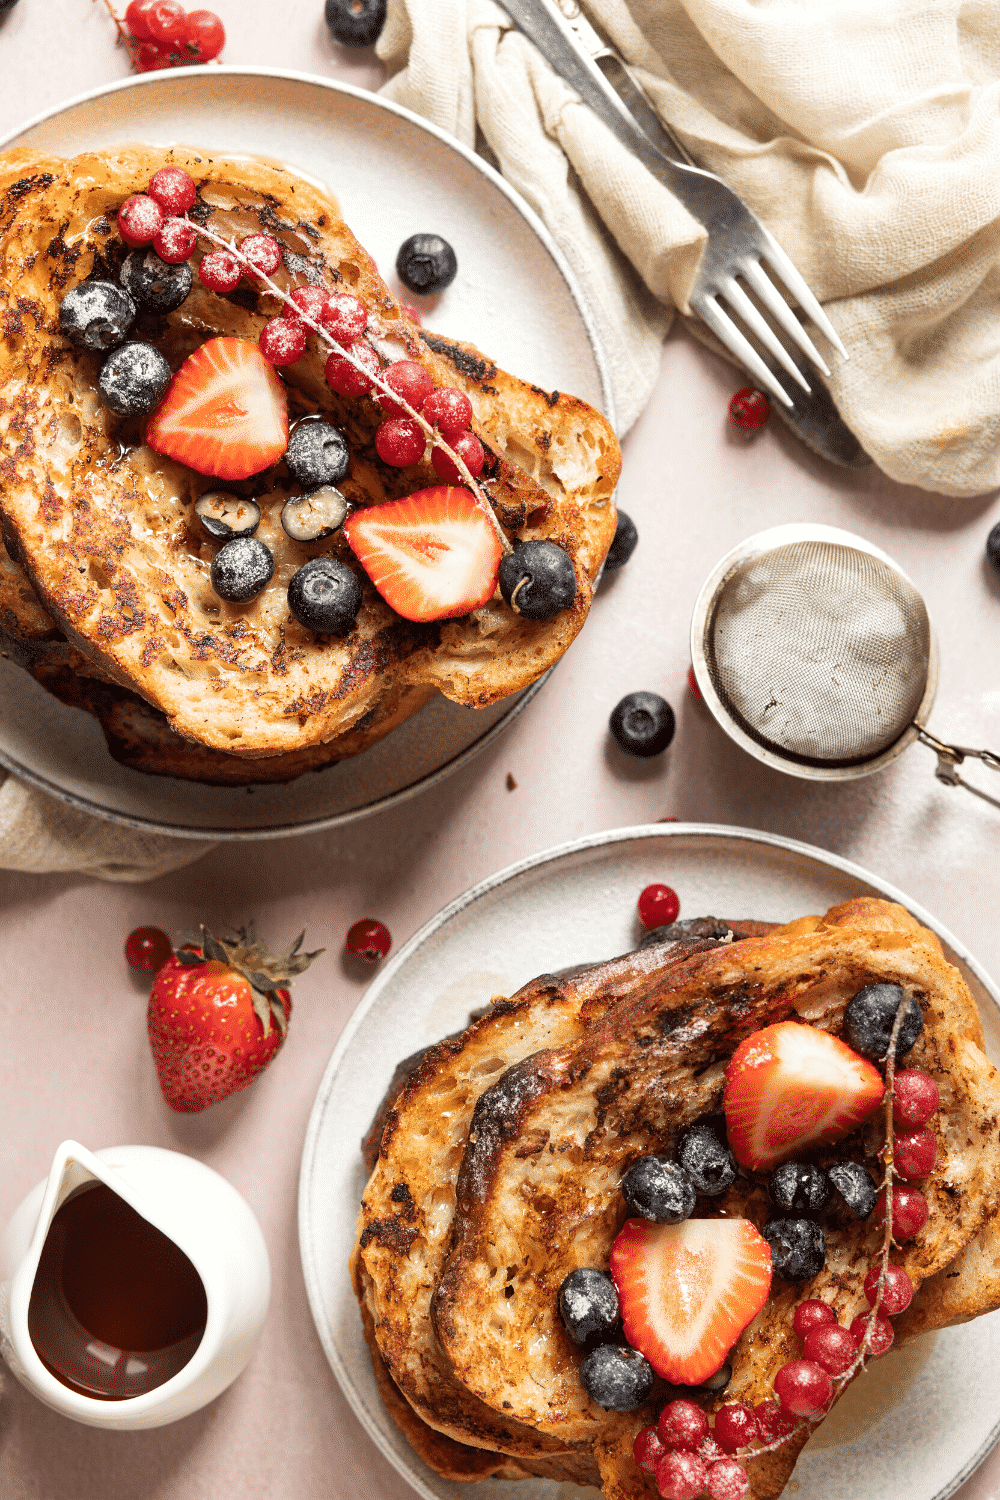 Two white plates with a few pieces of French toast stacked on top of one another on them. There is fresh fruit on the top slice of each piece and there is some fruit surrounding the white plates.